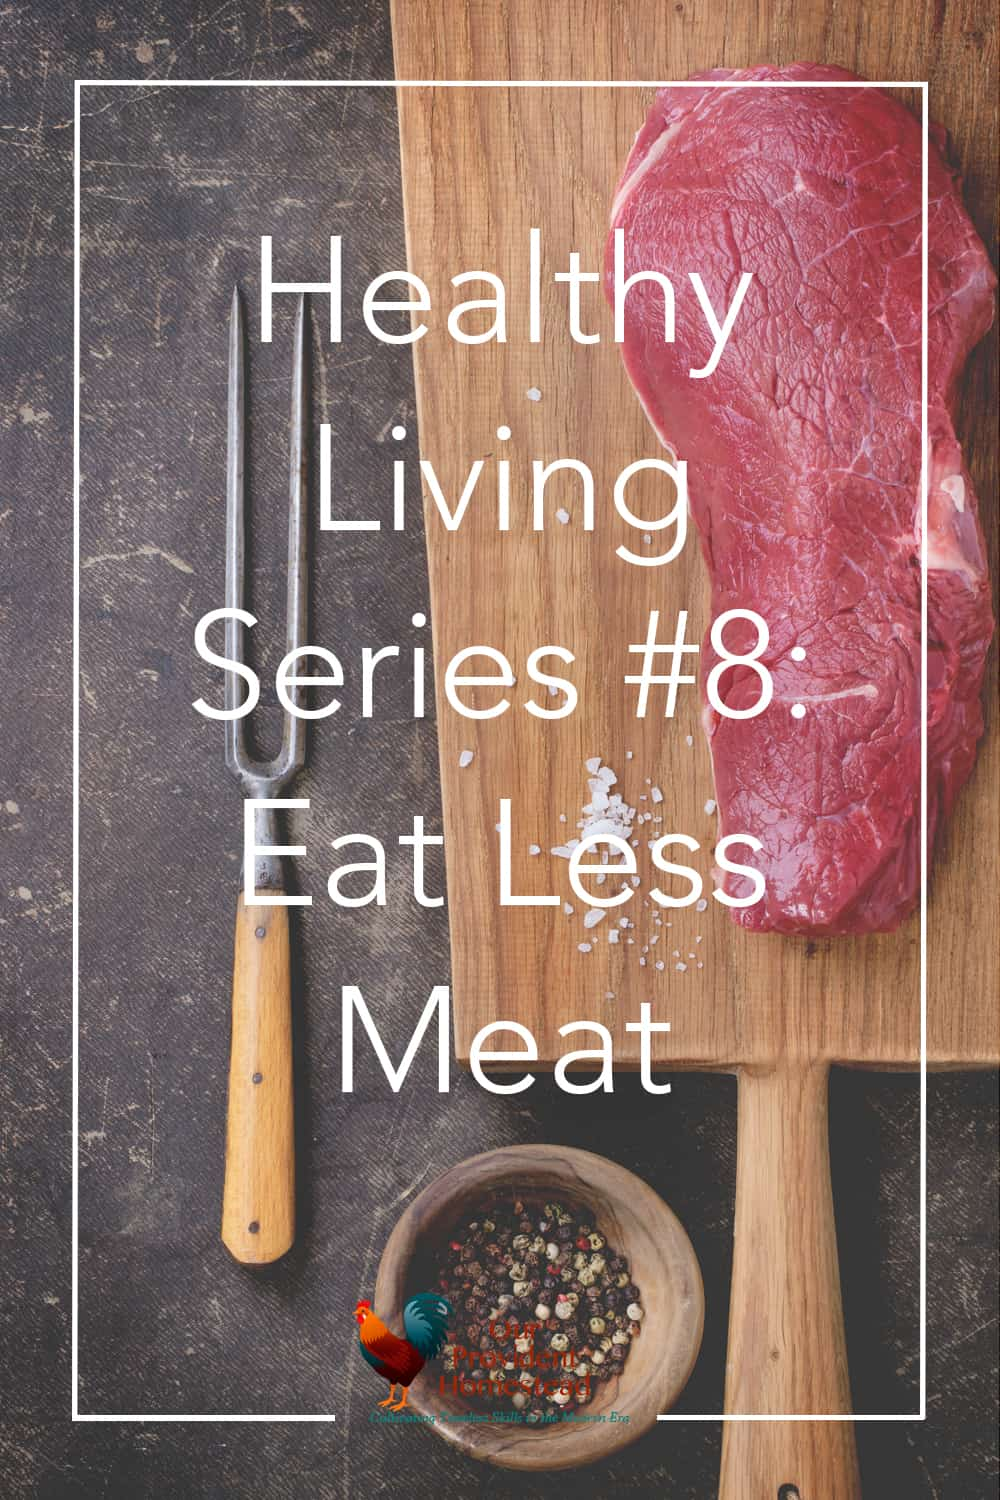 Do you love meat? Click here to see how eating less meat can help you live a healthier lifestyle and increase your quality of life. Eat Less Meat | Dangers of Eating Meat | Meatless Mondays